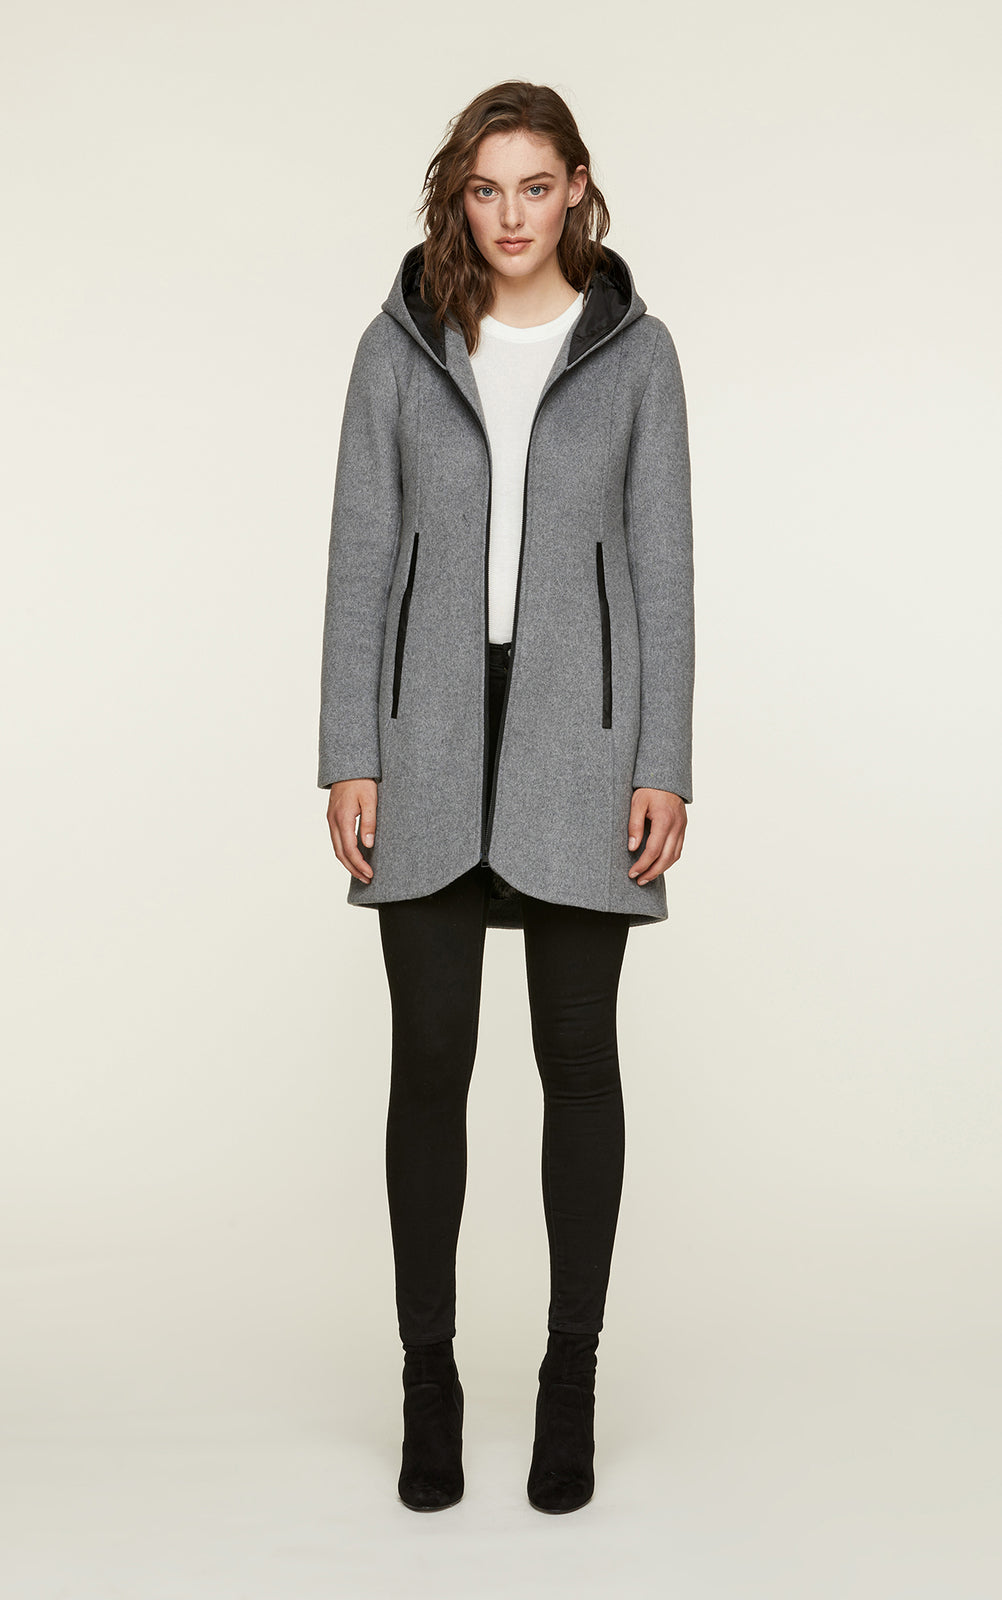 Charlena-FX Slim Fit Wool Coat - Ash